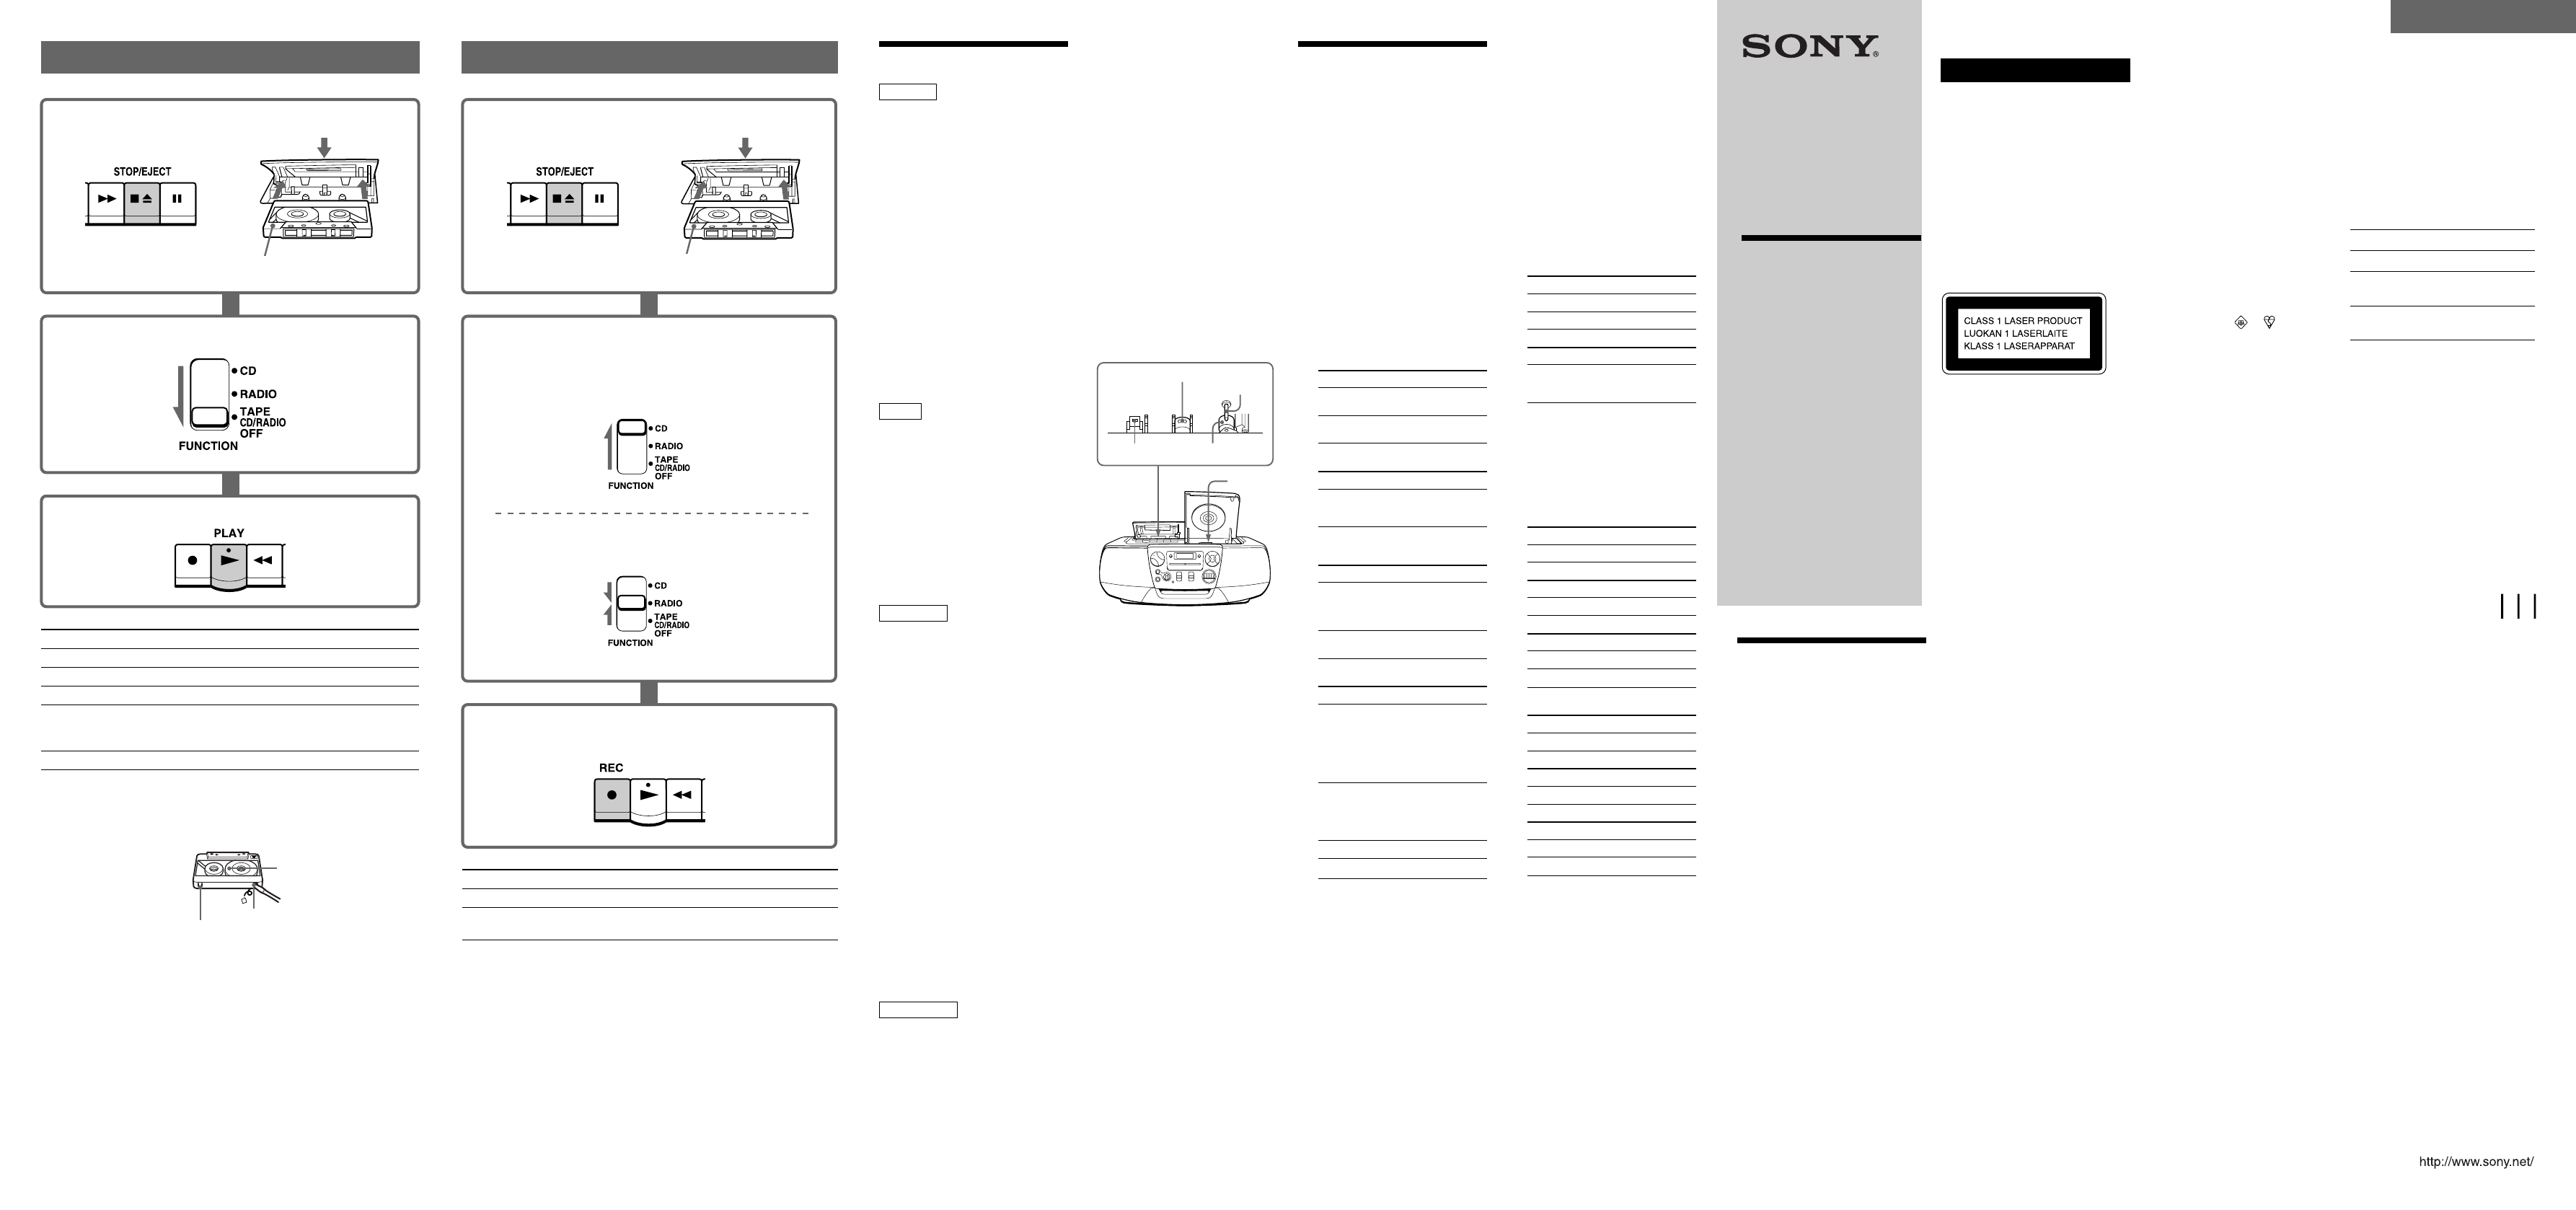 Sony CFD-V31L Portable CD Player User Manual